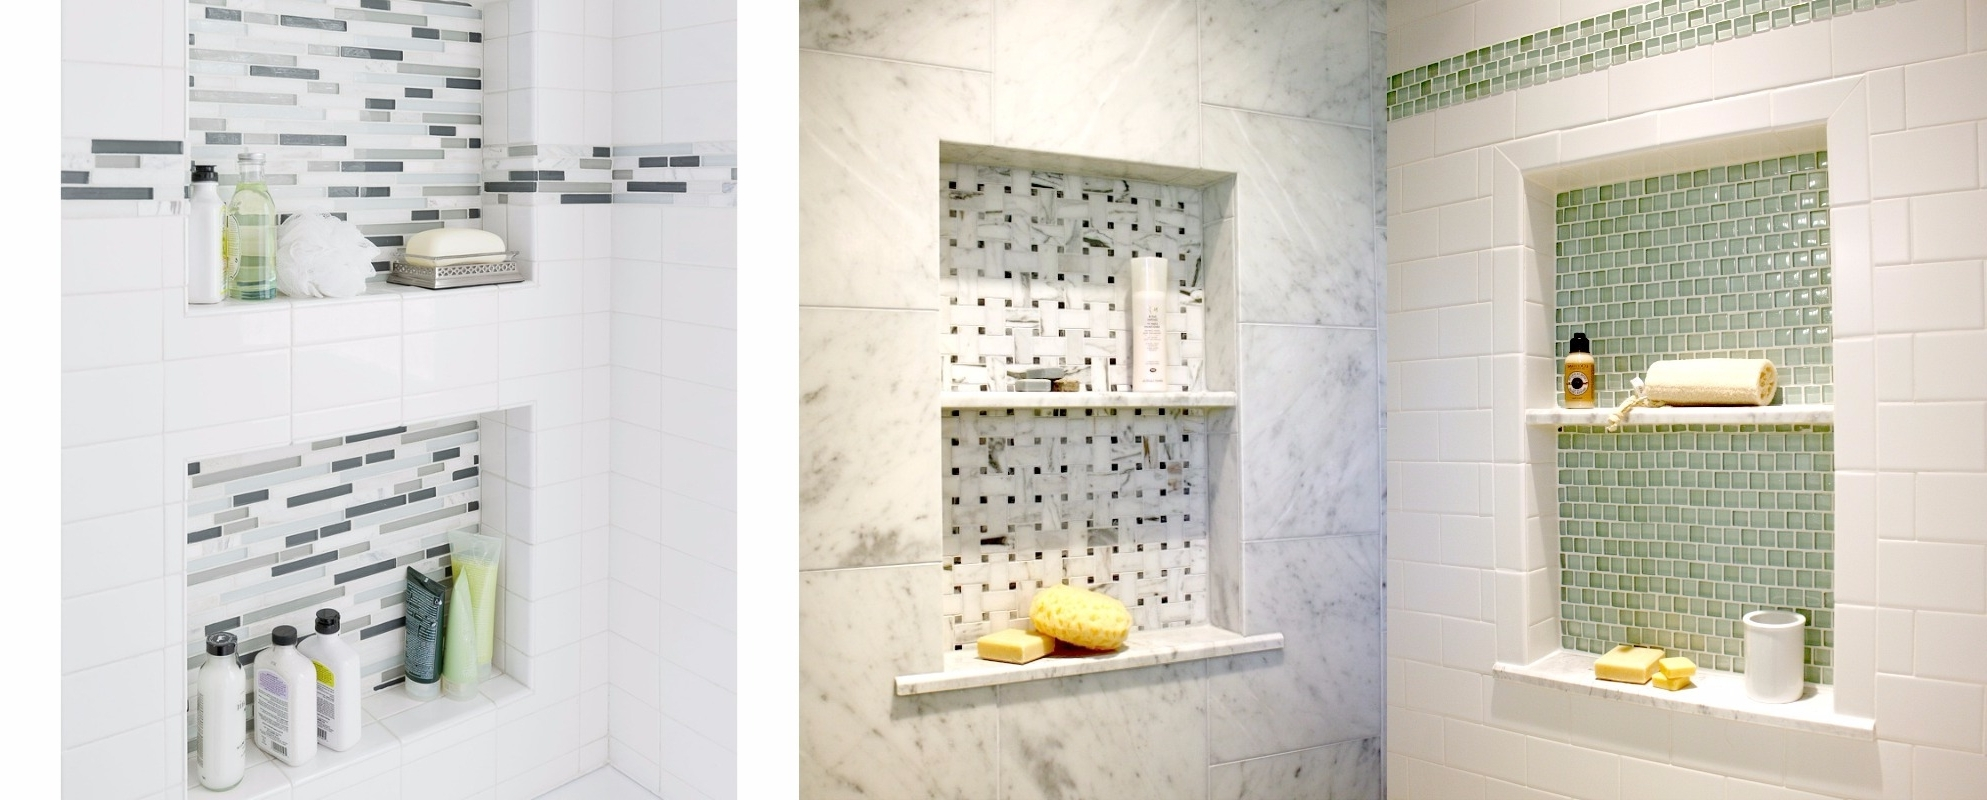 Bathroom Niche Designs For Style, Beauty, And Purpose 40+ Bathroom Niche Design Ideas